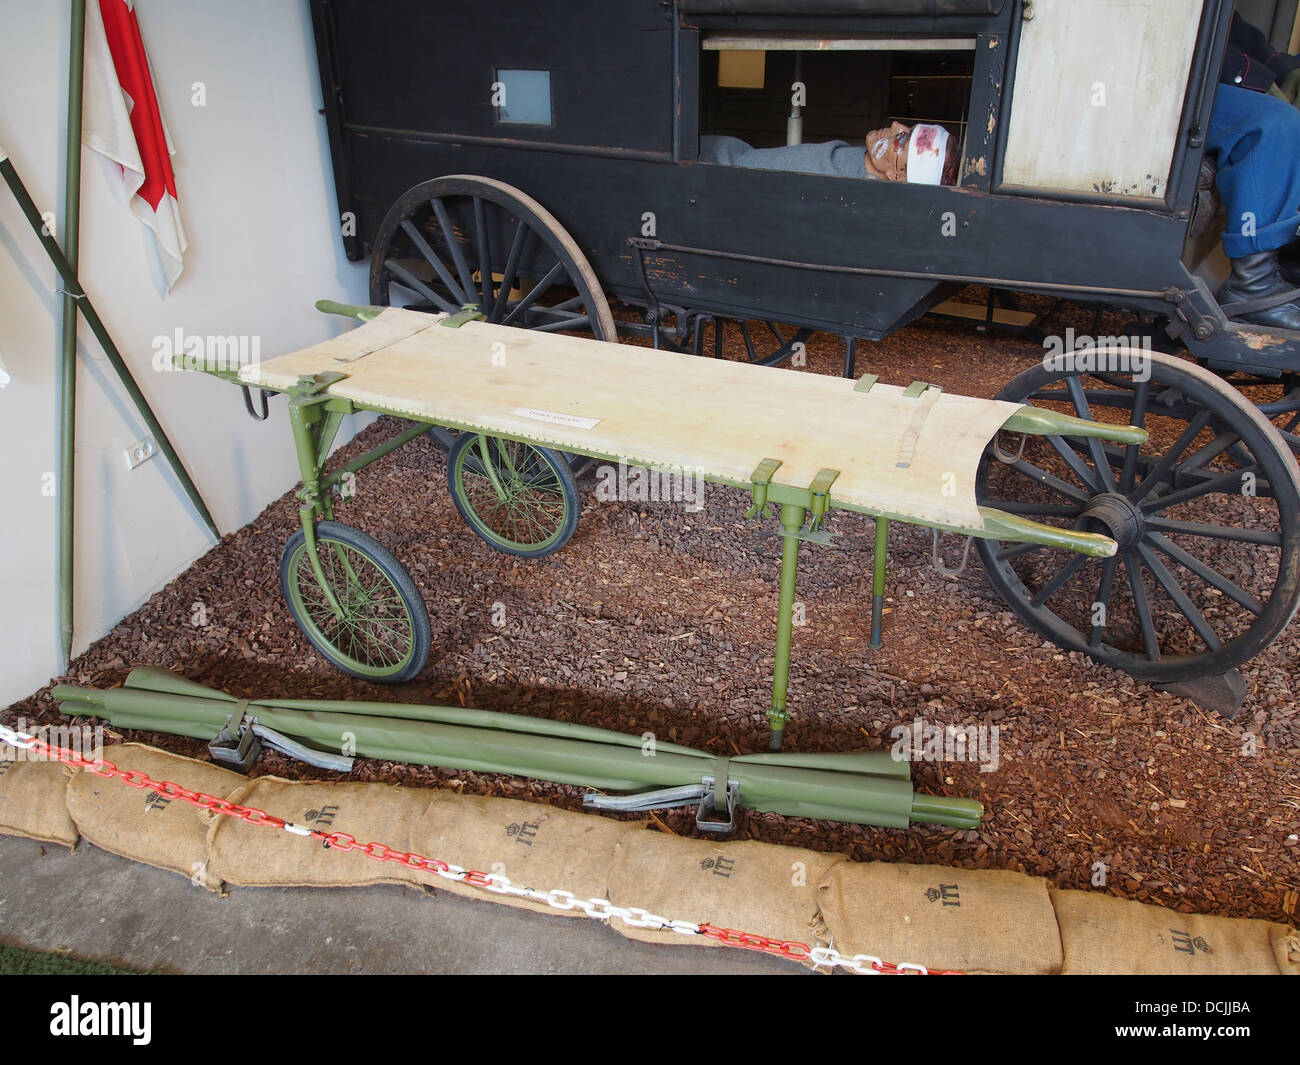 Old wheeled stretcher, photographed at the Aalborg Forsvars- og Garnisonsmuseum - Stock Image